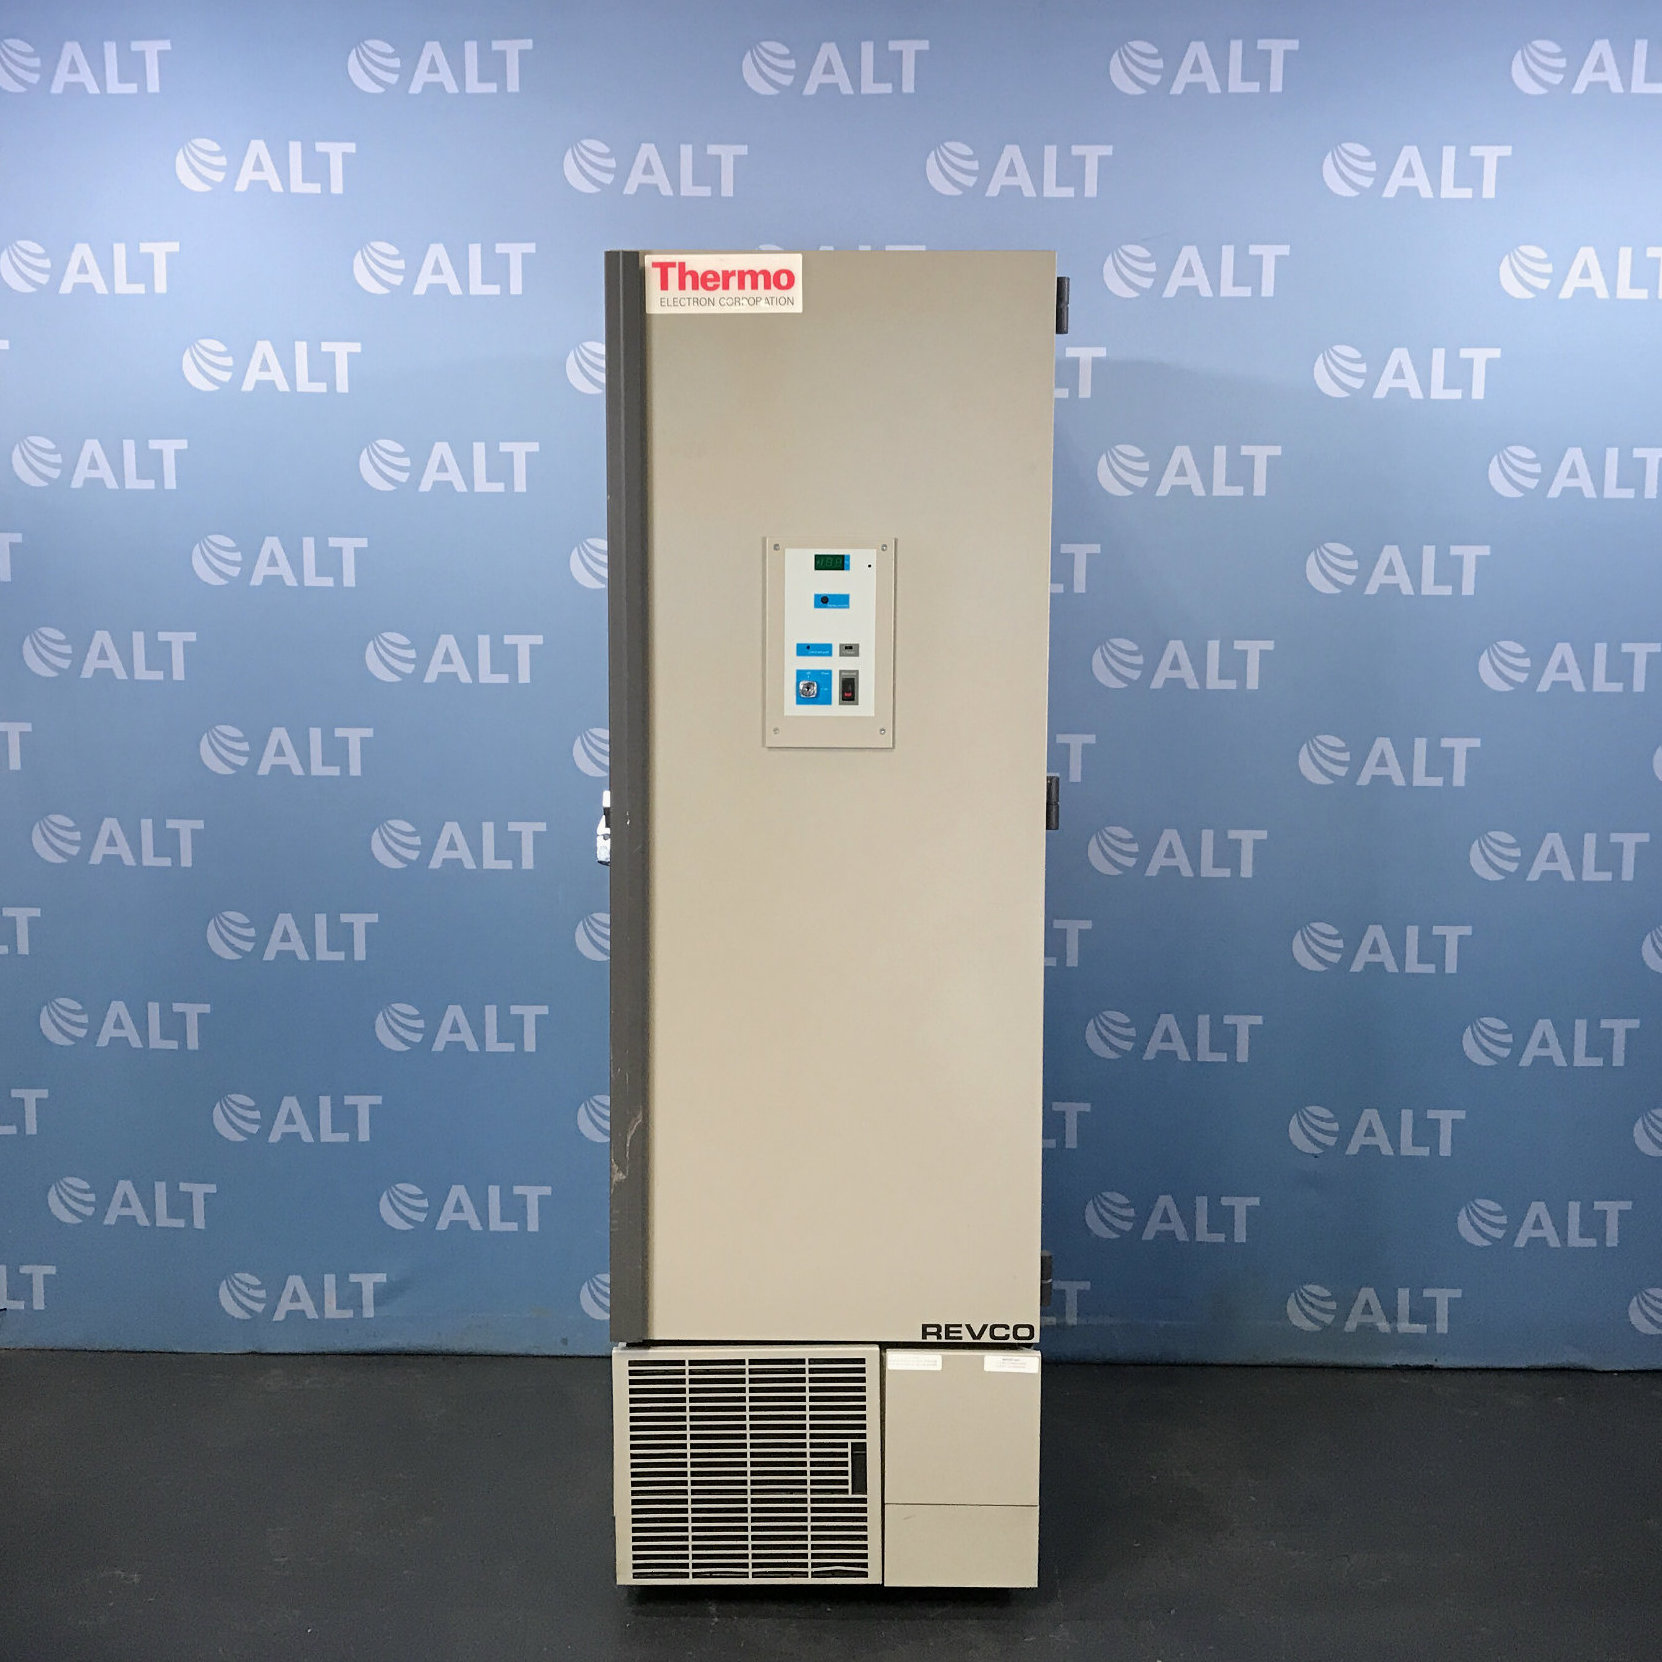 Thermo Electron Corporation Revco Slimline Ultralow-Temperature Freezer Model ULT1186-3SI-A35 Image